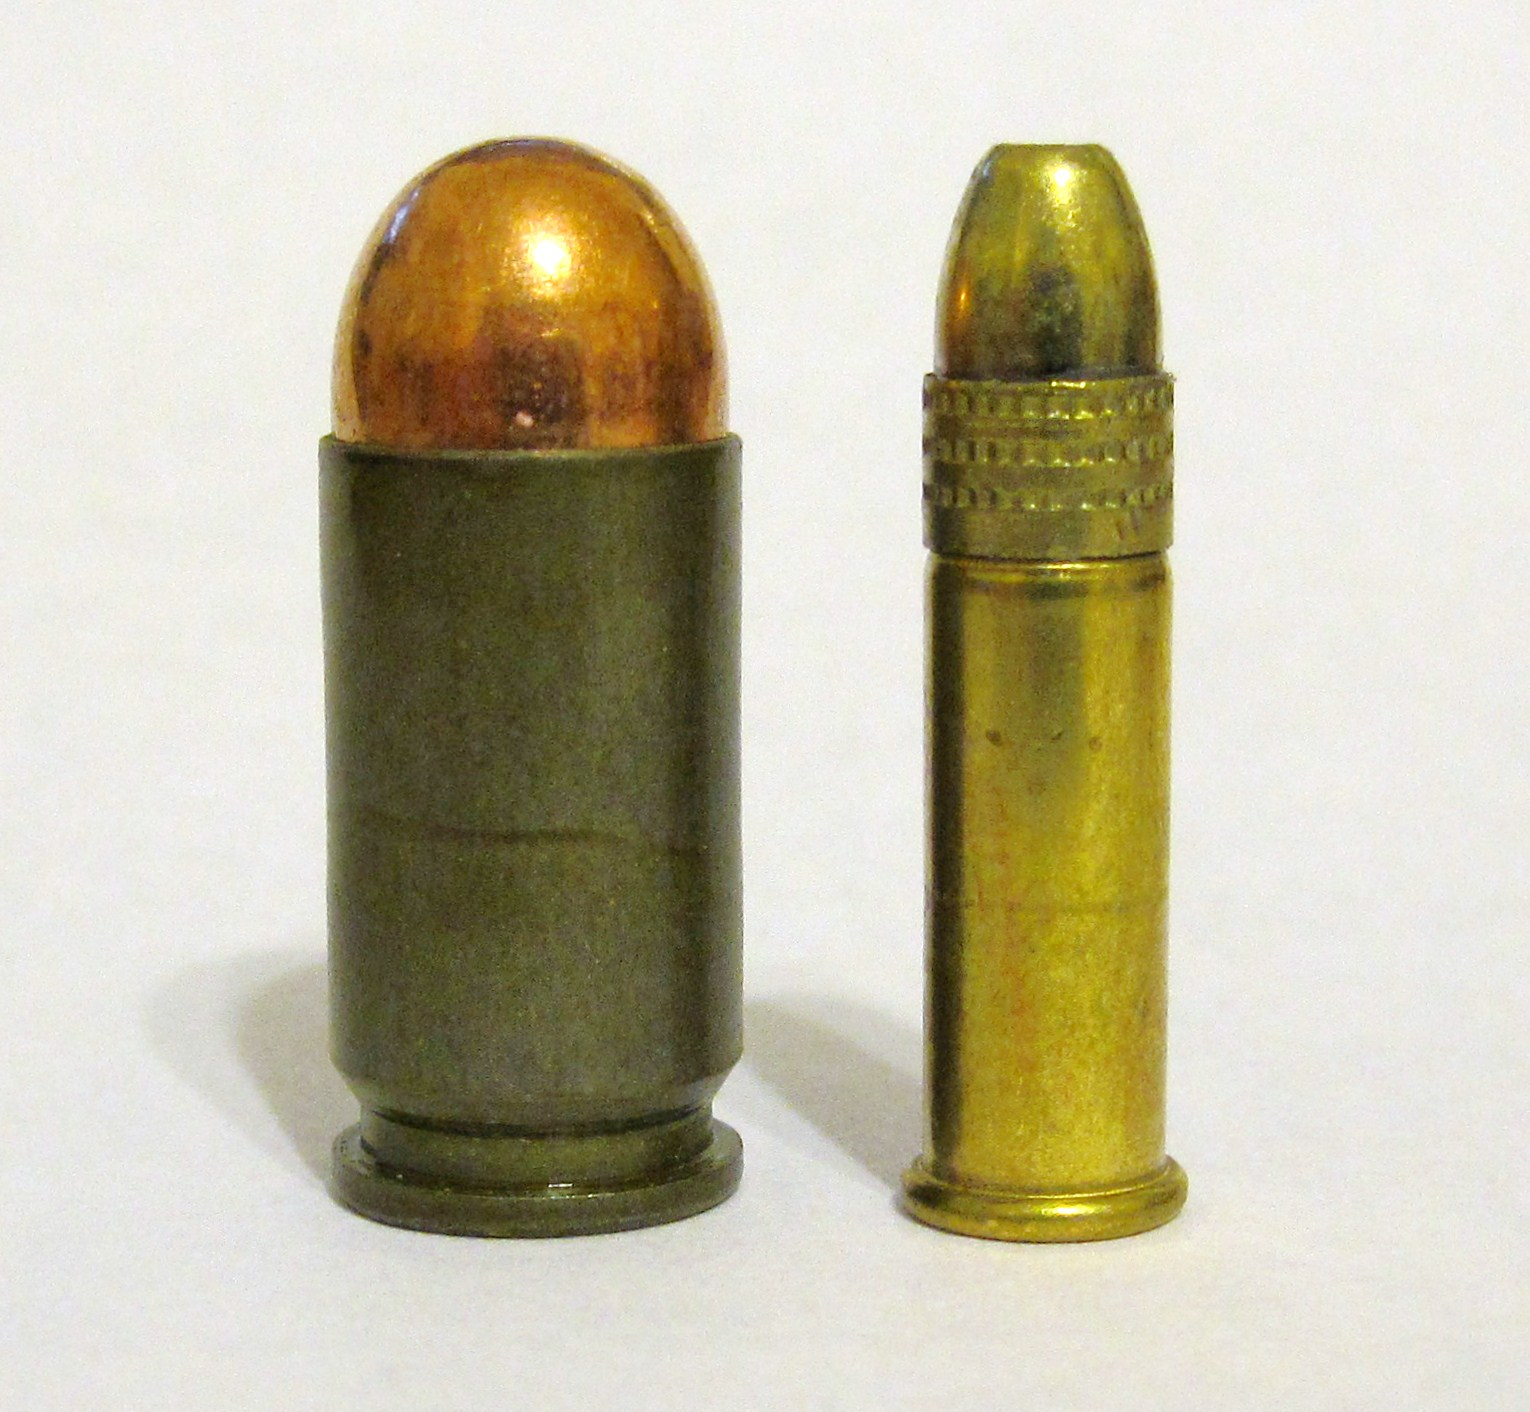 File:9mmMakarov-vs-22LR.jpg - Wikimedia Commons